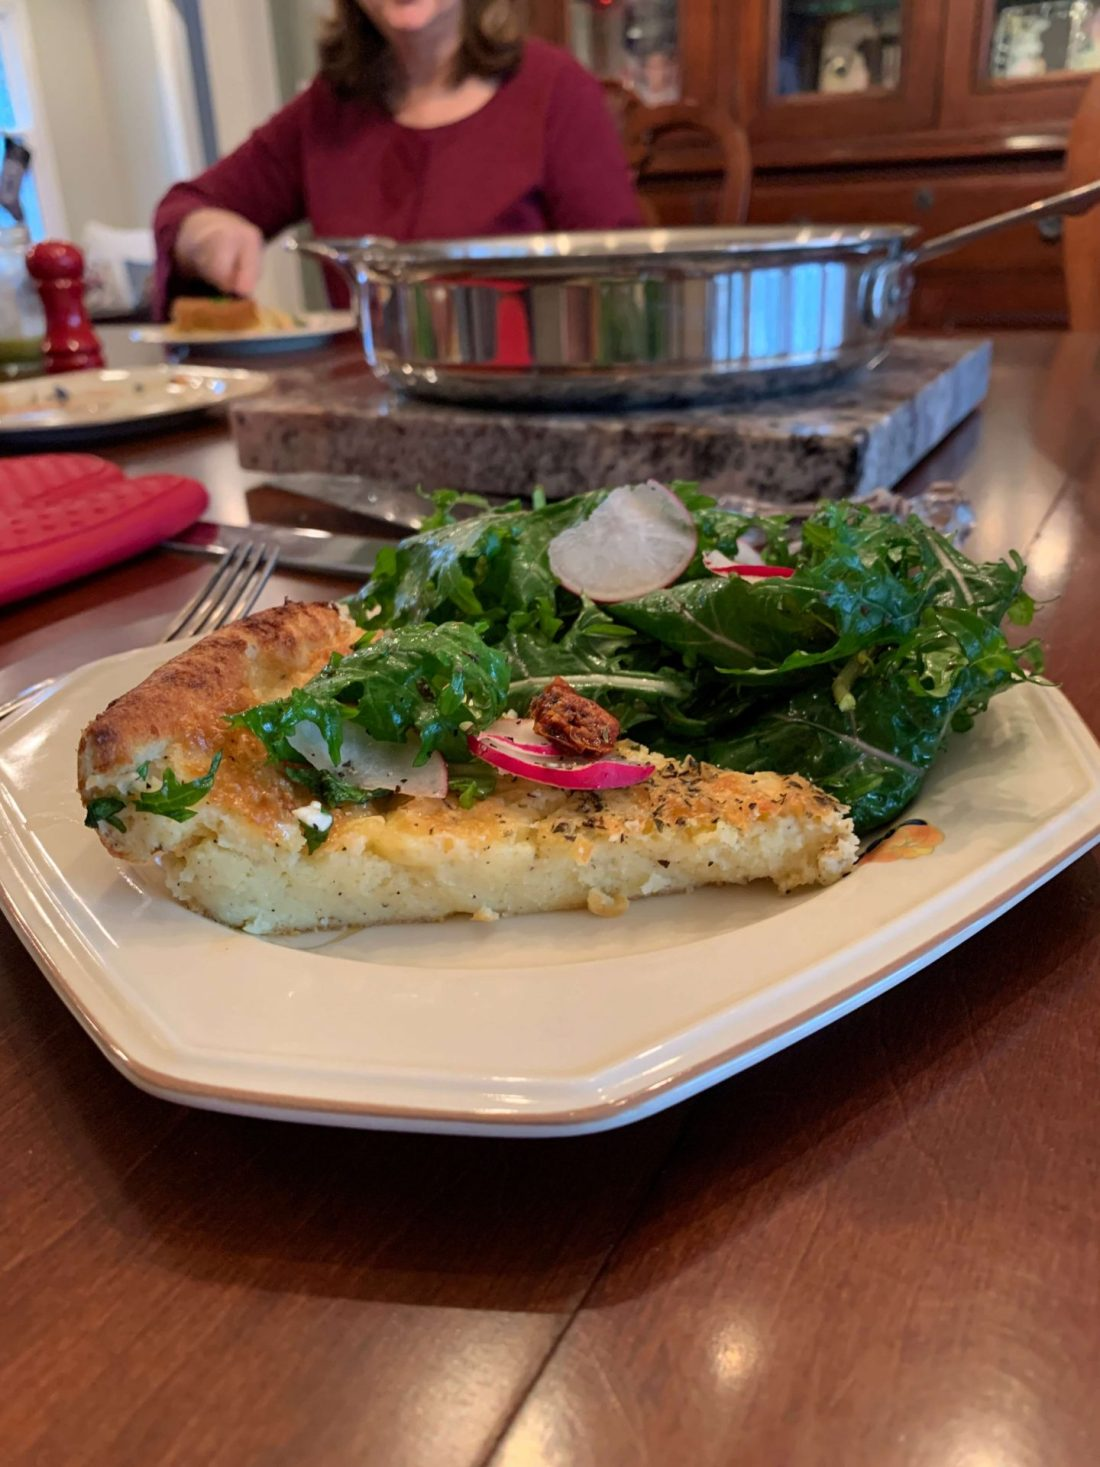 A slice of Savory Dutch Baby Pancake with Arugula, mozzarella, parmesan, sun-dried tomatoes, and radishes for brunch